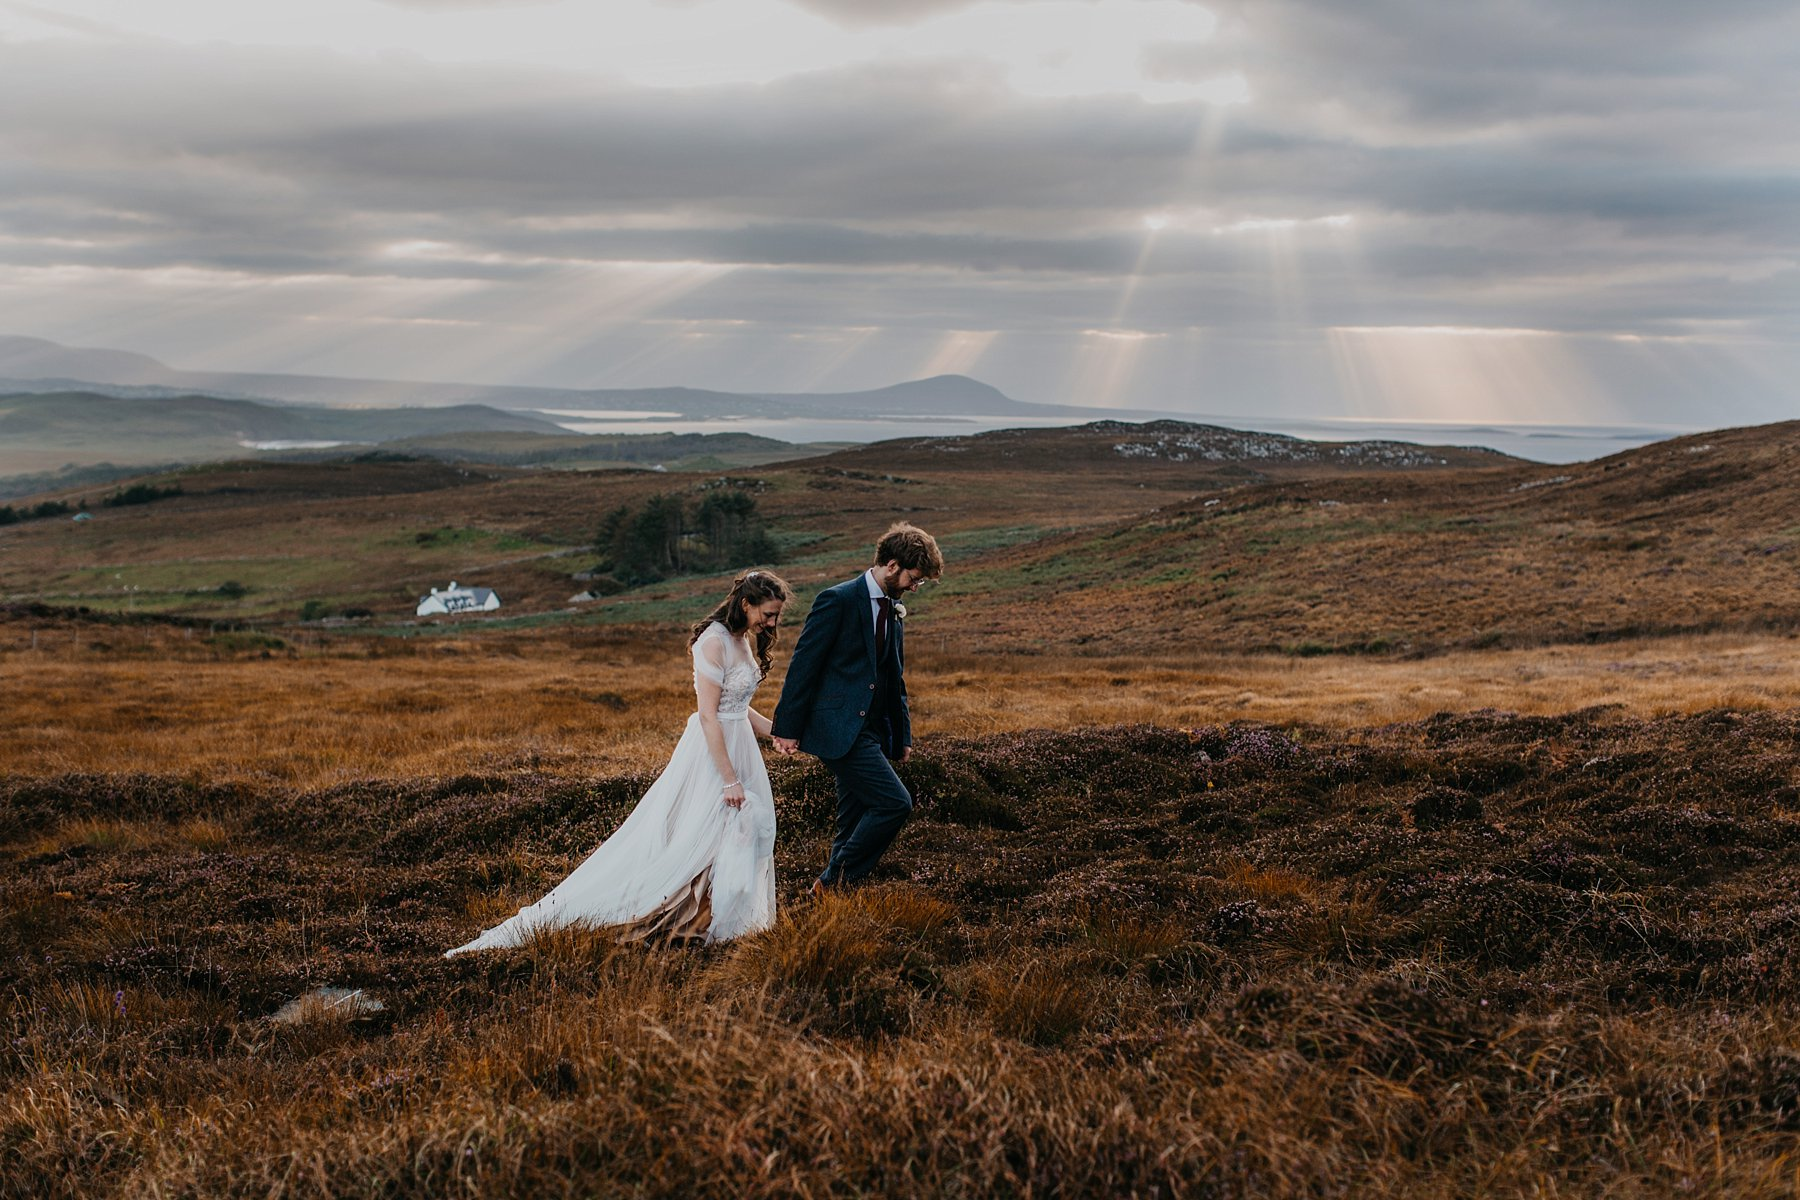 hornhead_donegak_elopement_weddings_0074